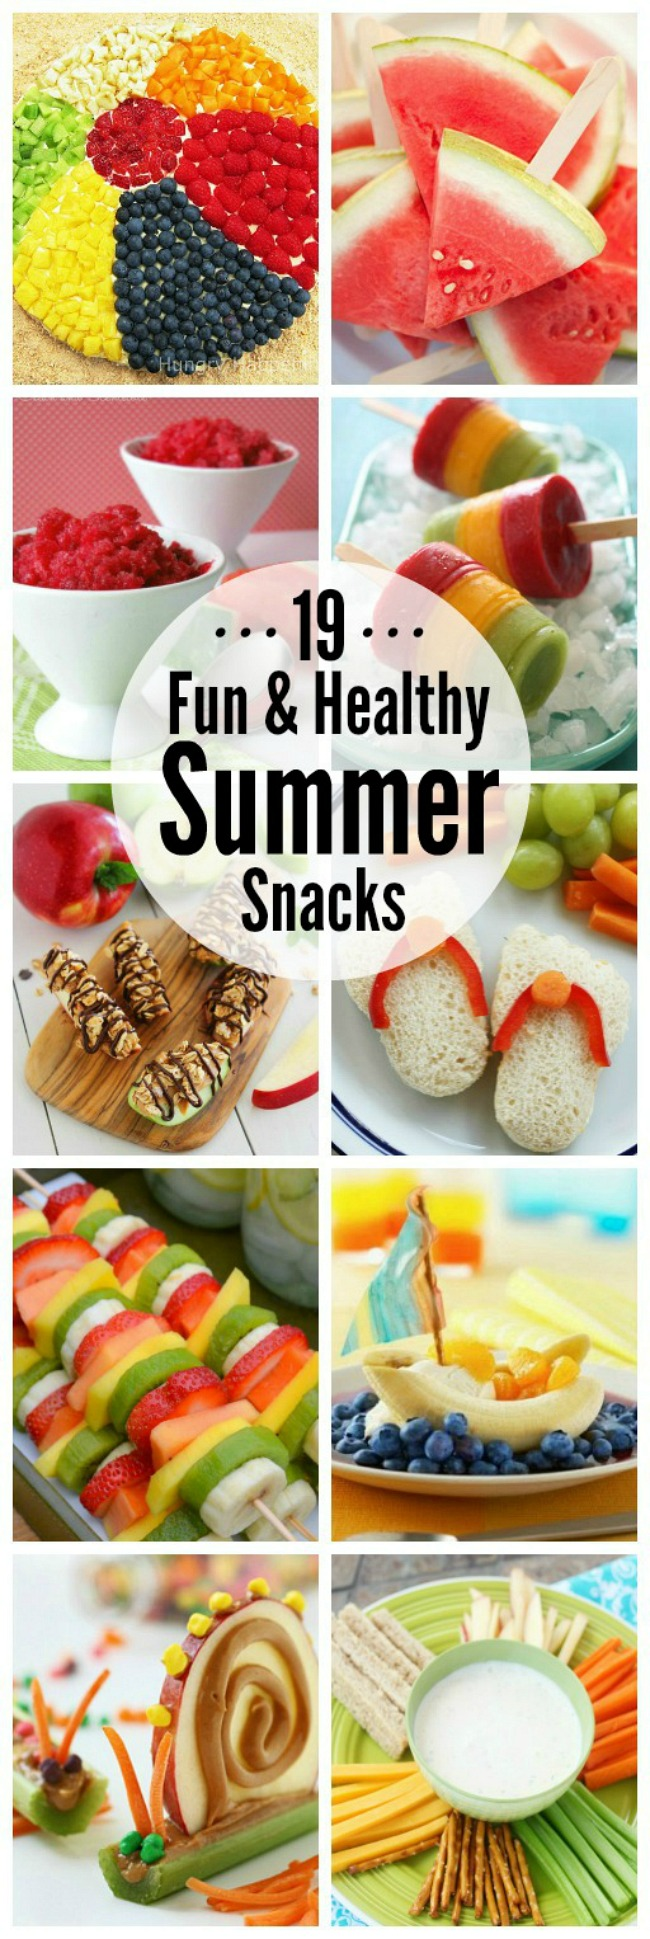 I love all of these fun and healthy summer snack ideas.  The kids will gobble them up!